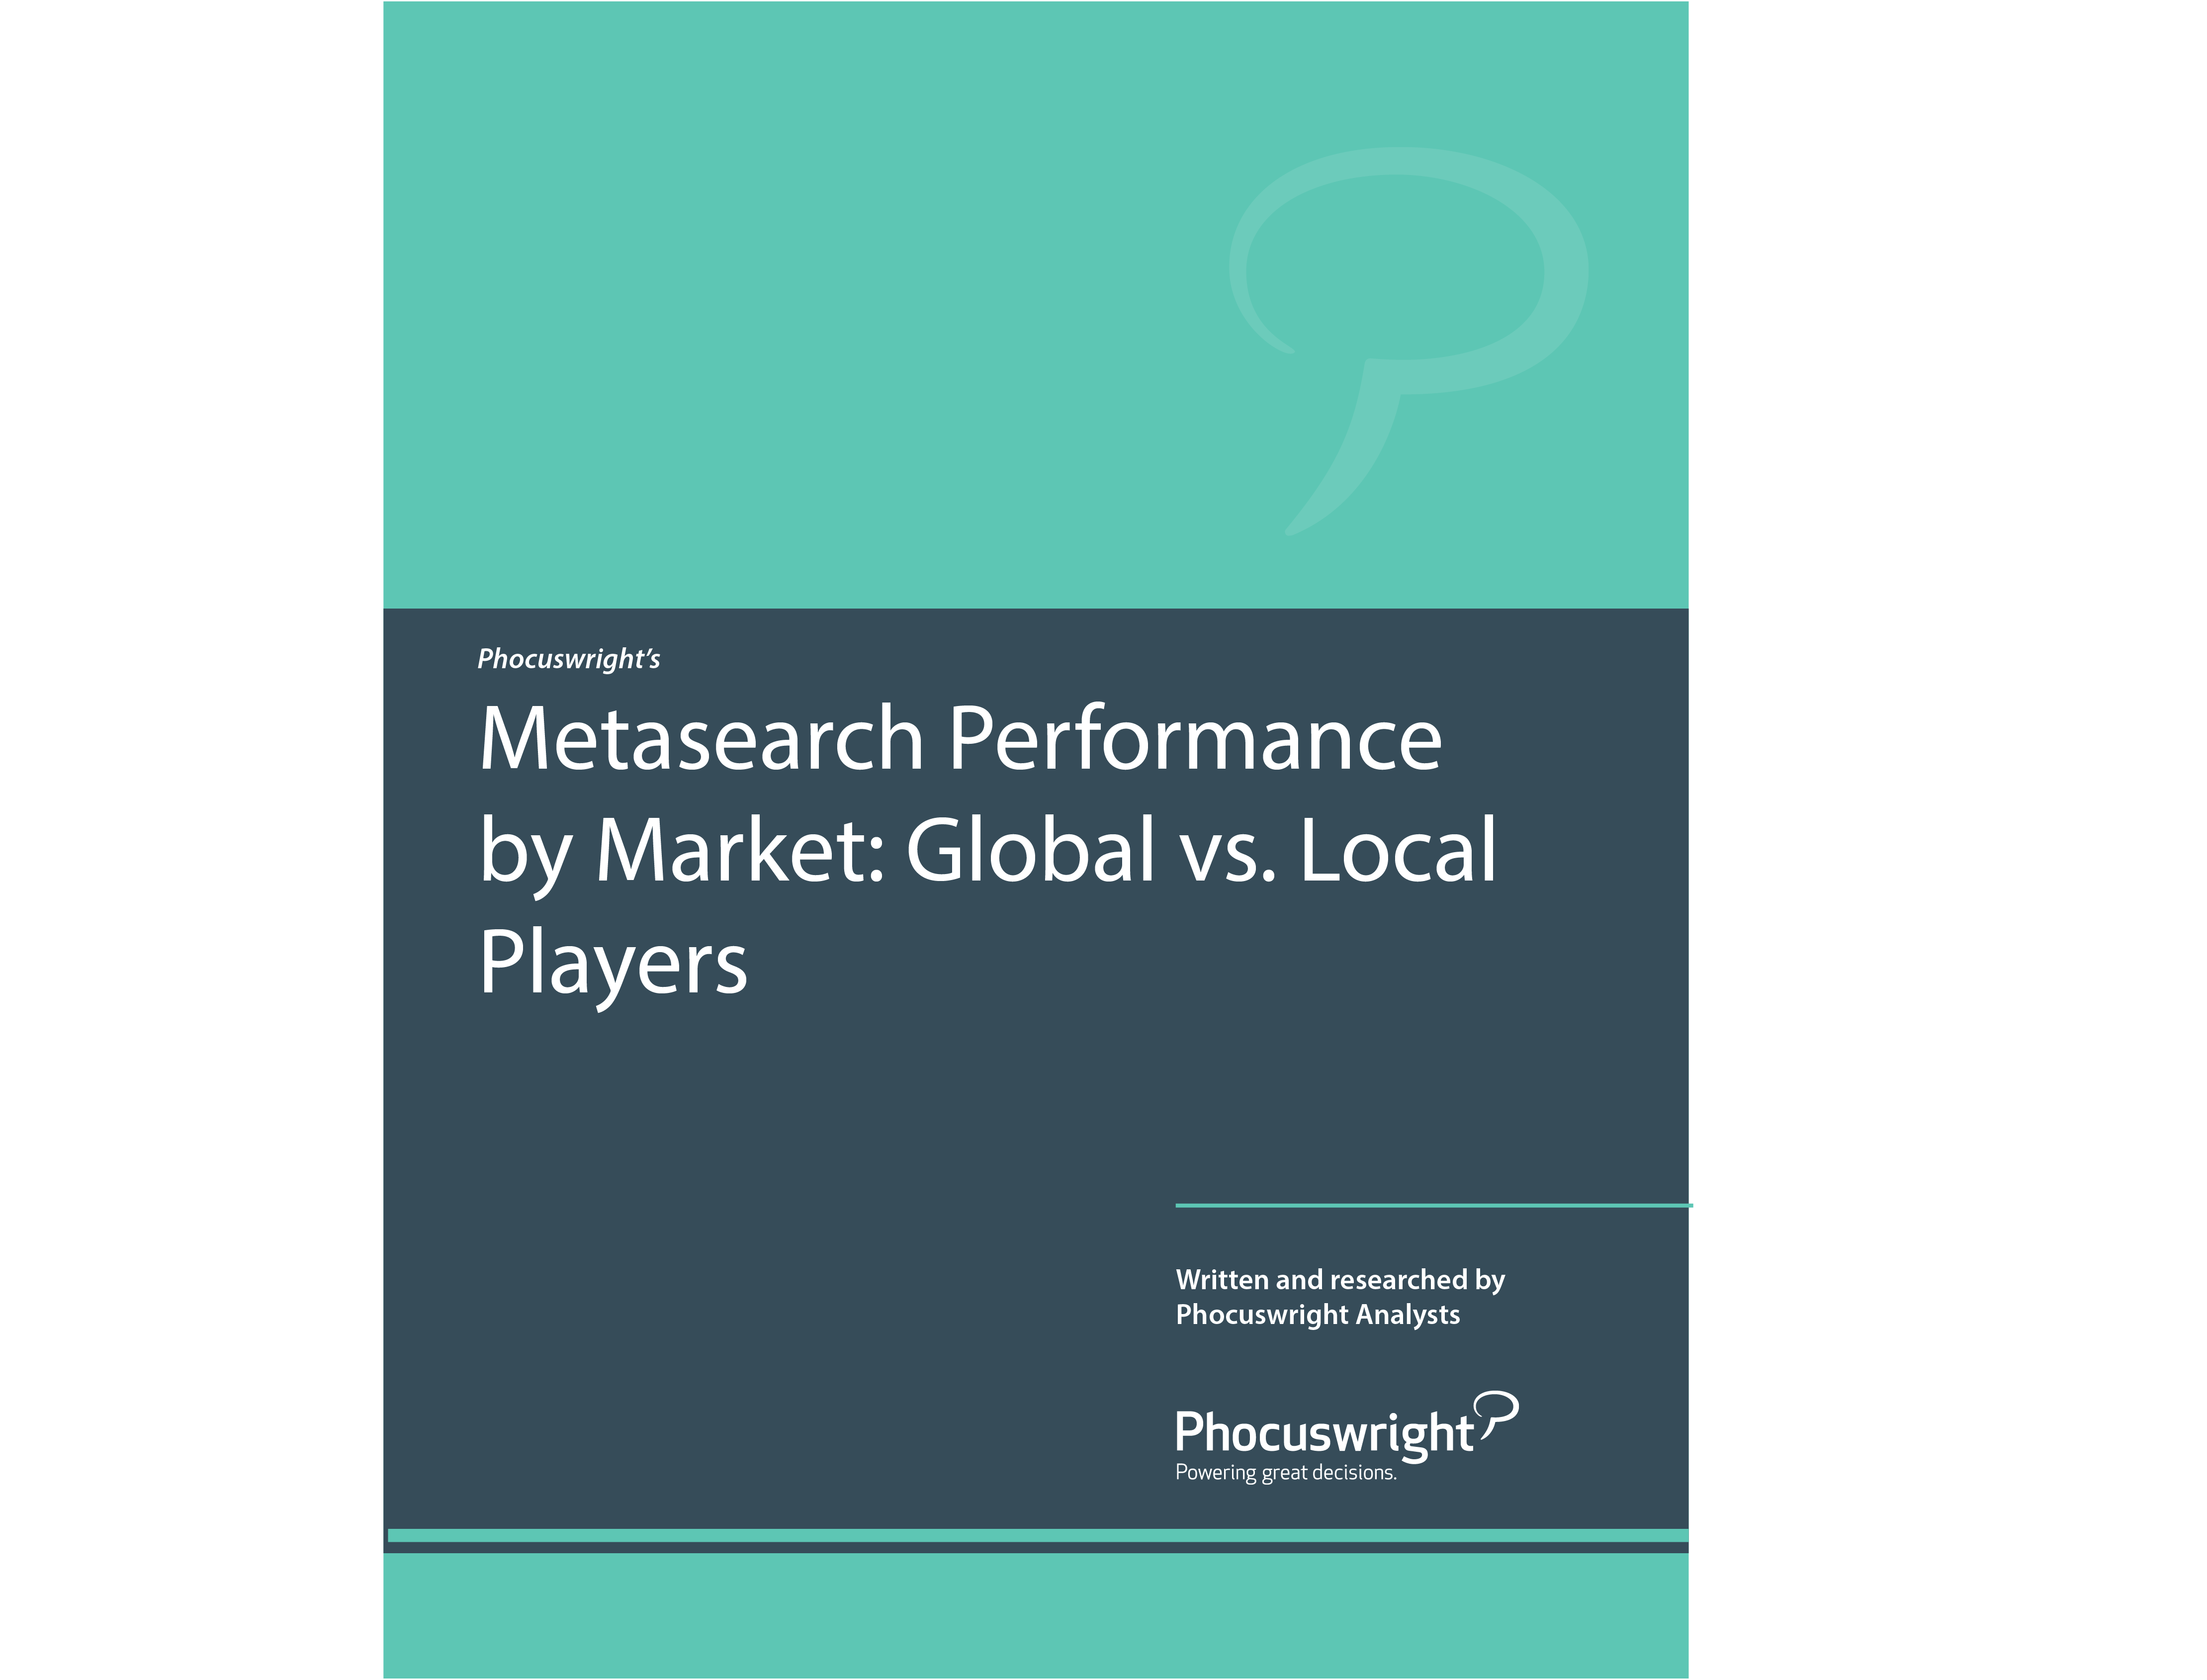 Metasearch Performance by Market: Global vs. Local Players